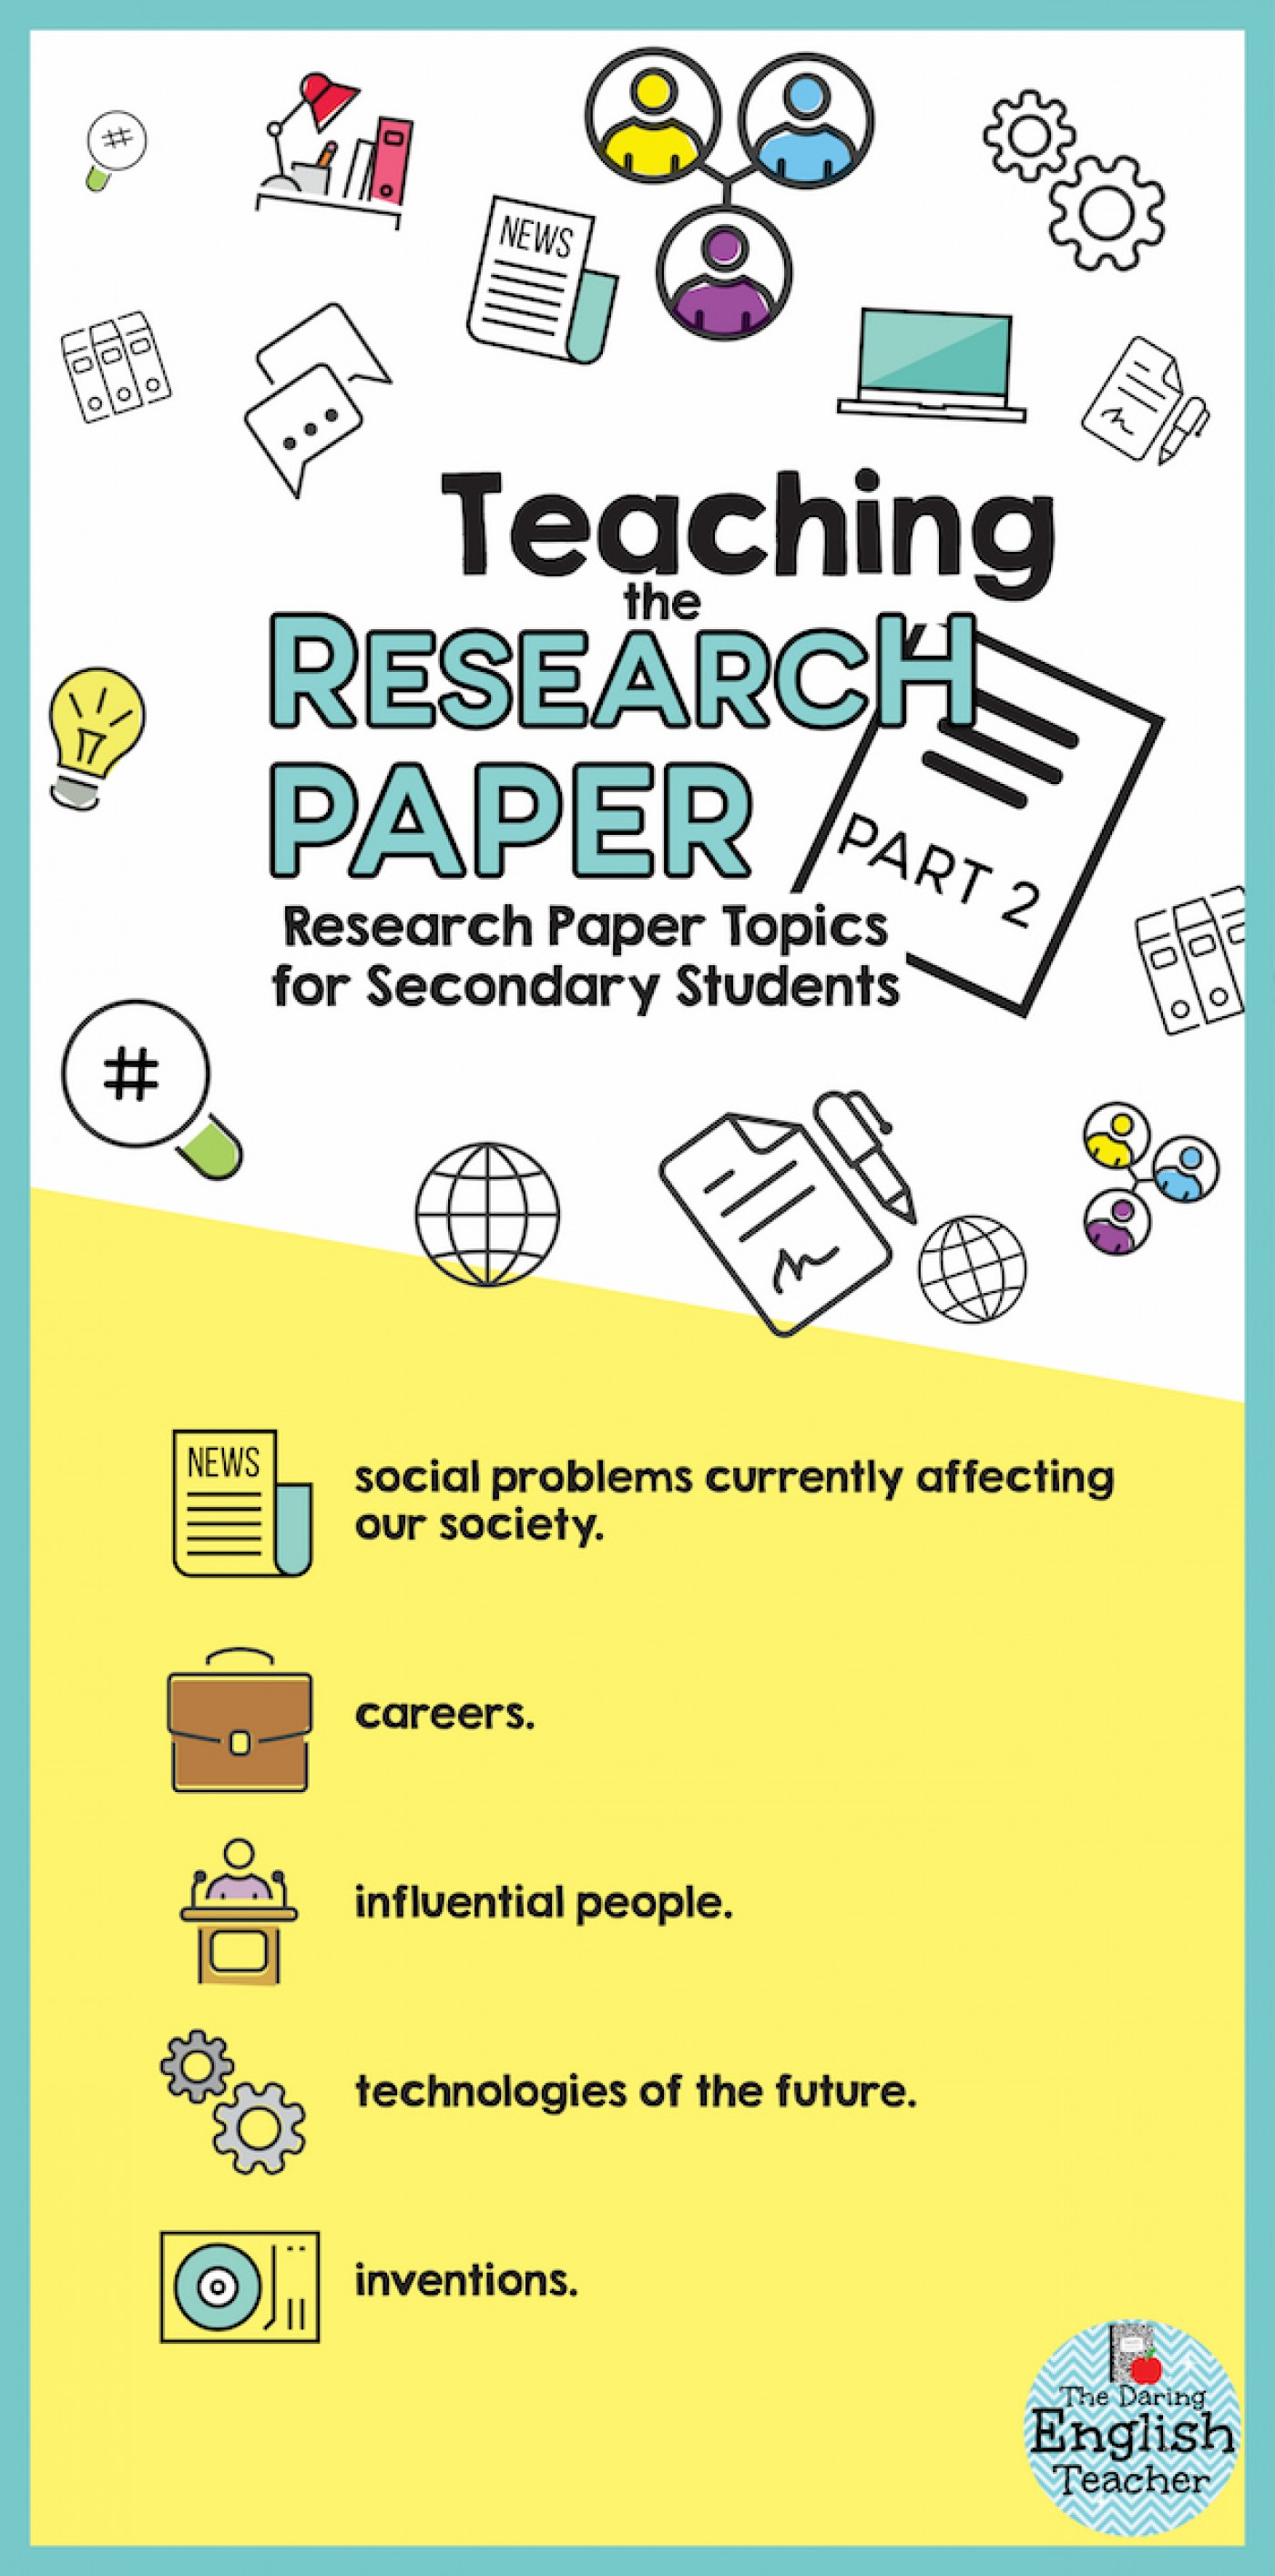 020 Infographic2bp22b2 Research Paper Topic For Unusual A Topics On Education Best High School Papers Business Management 1400